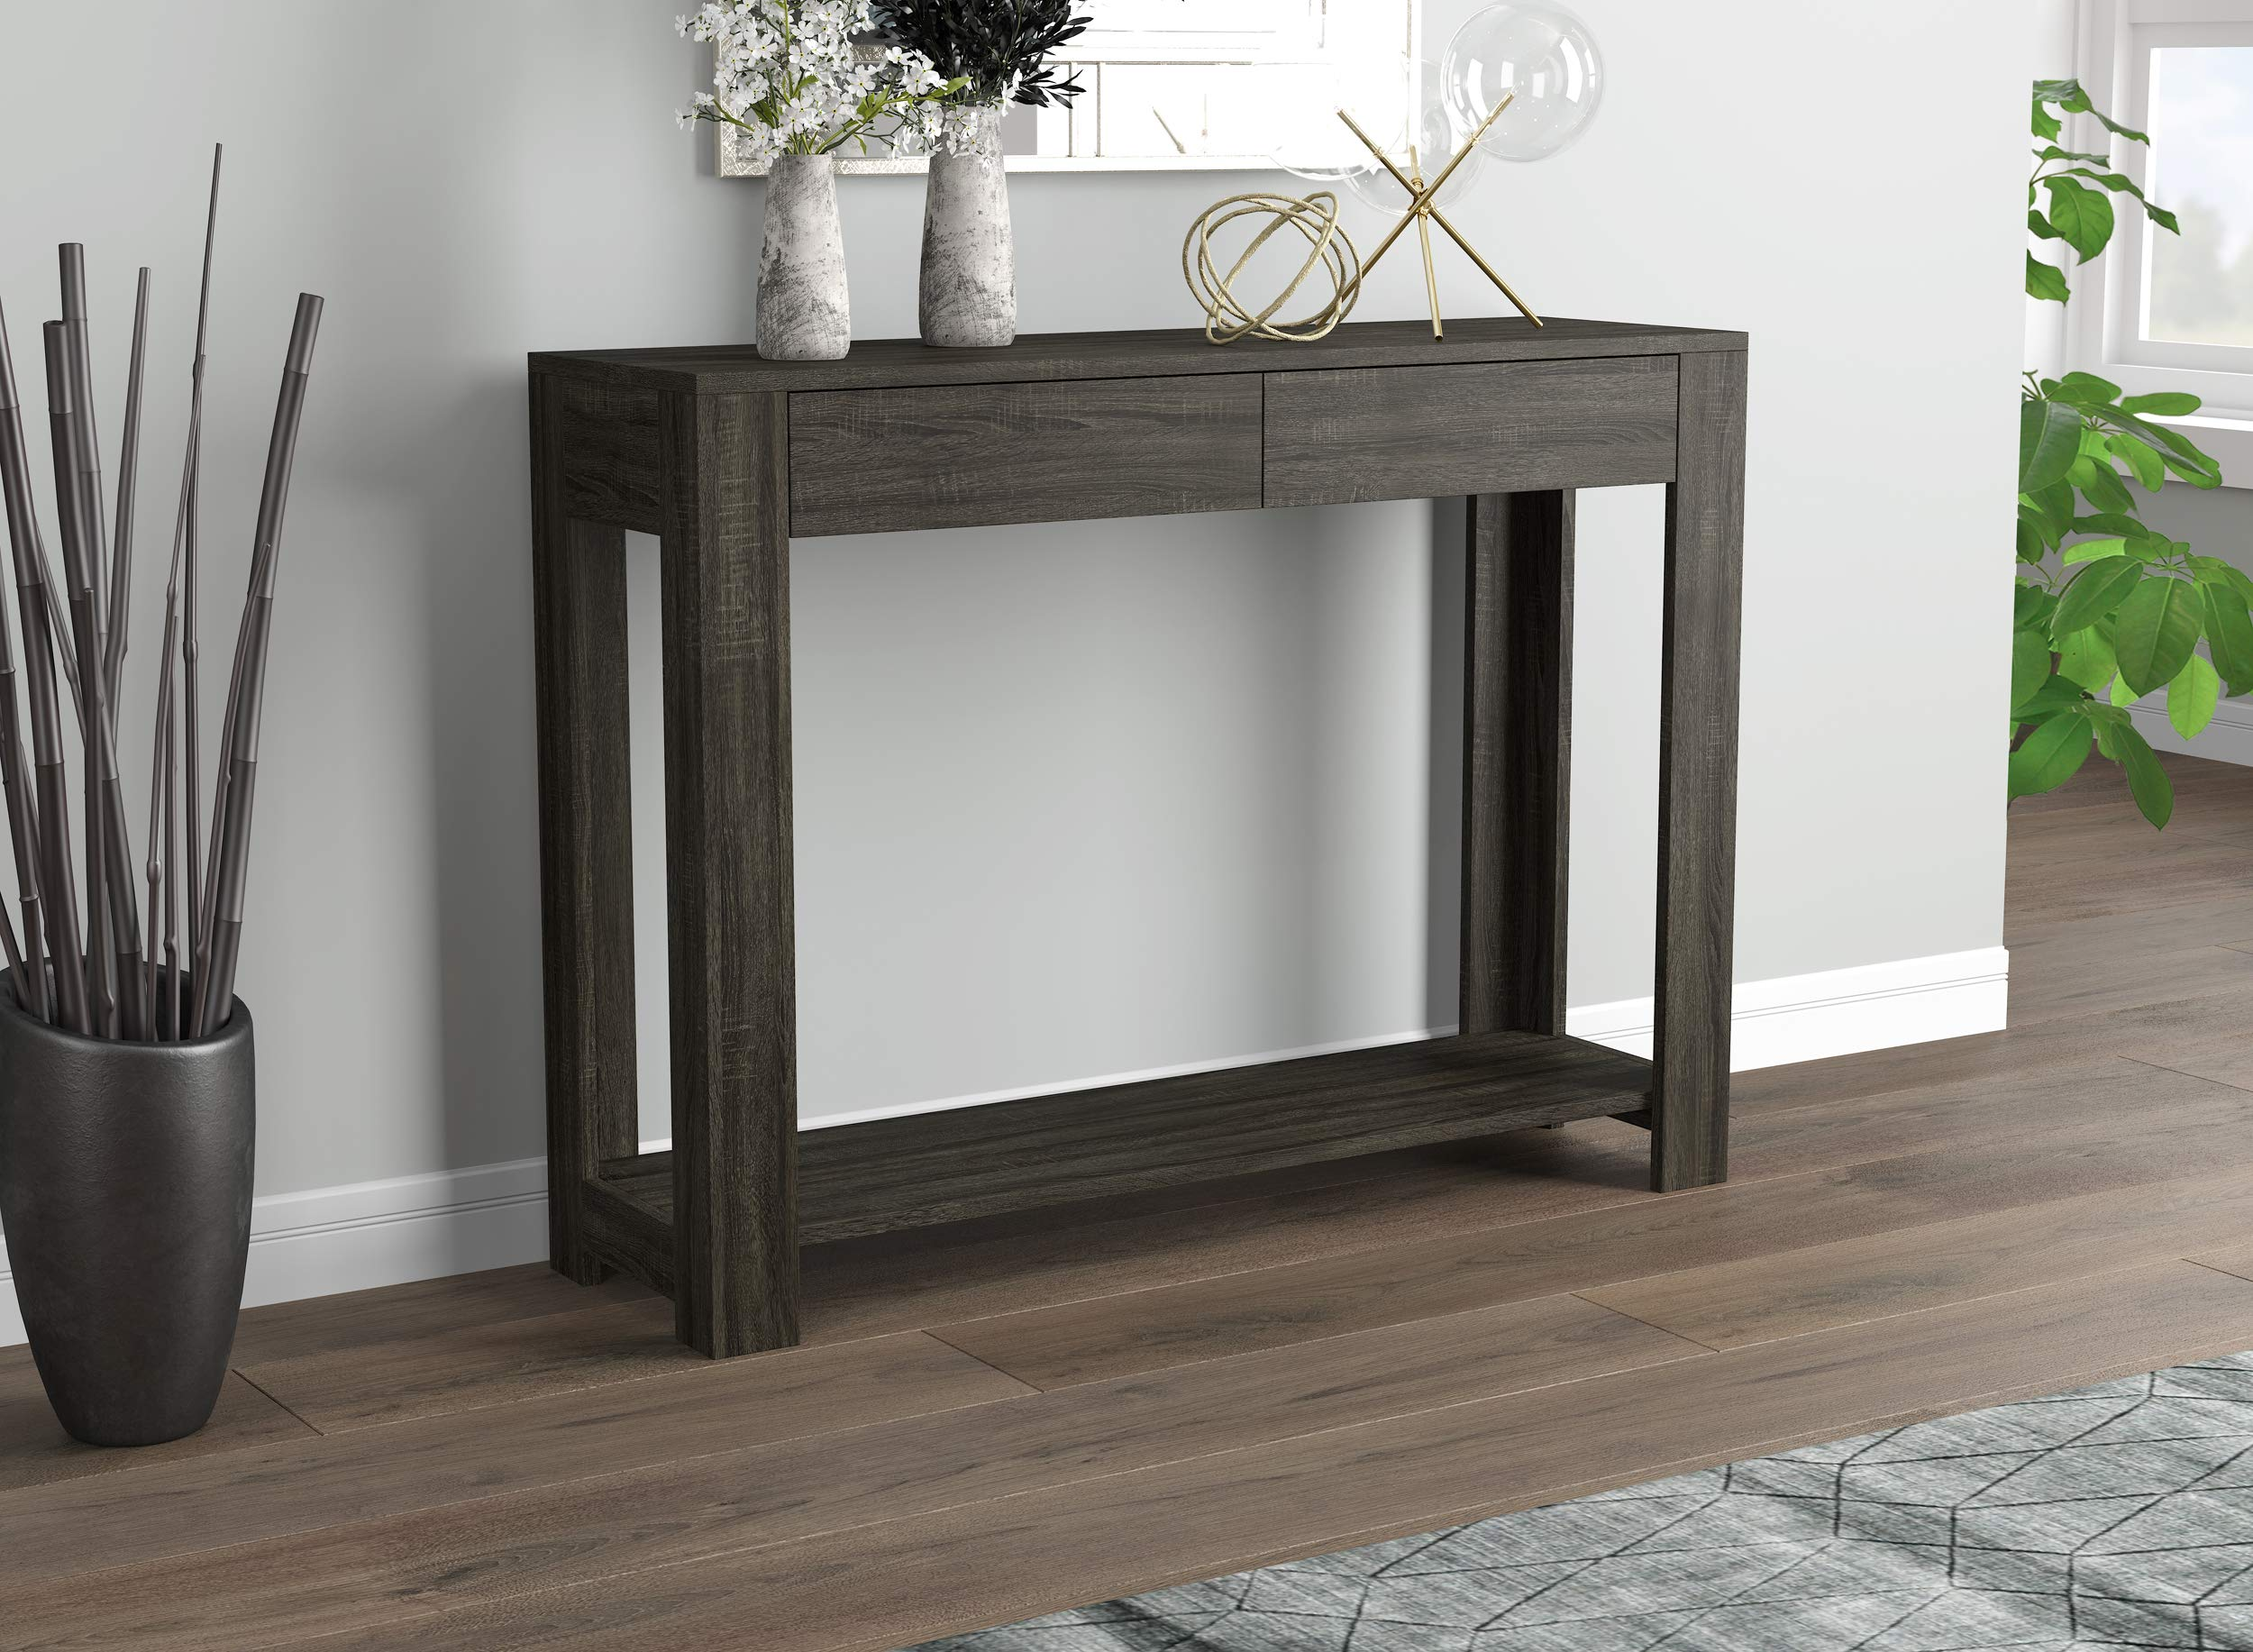 Safdie & Co. Table-40 Grey with 2 Drawers Console Table, Gray by Safdie & Co.